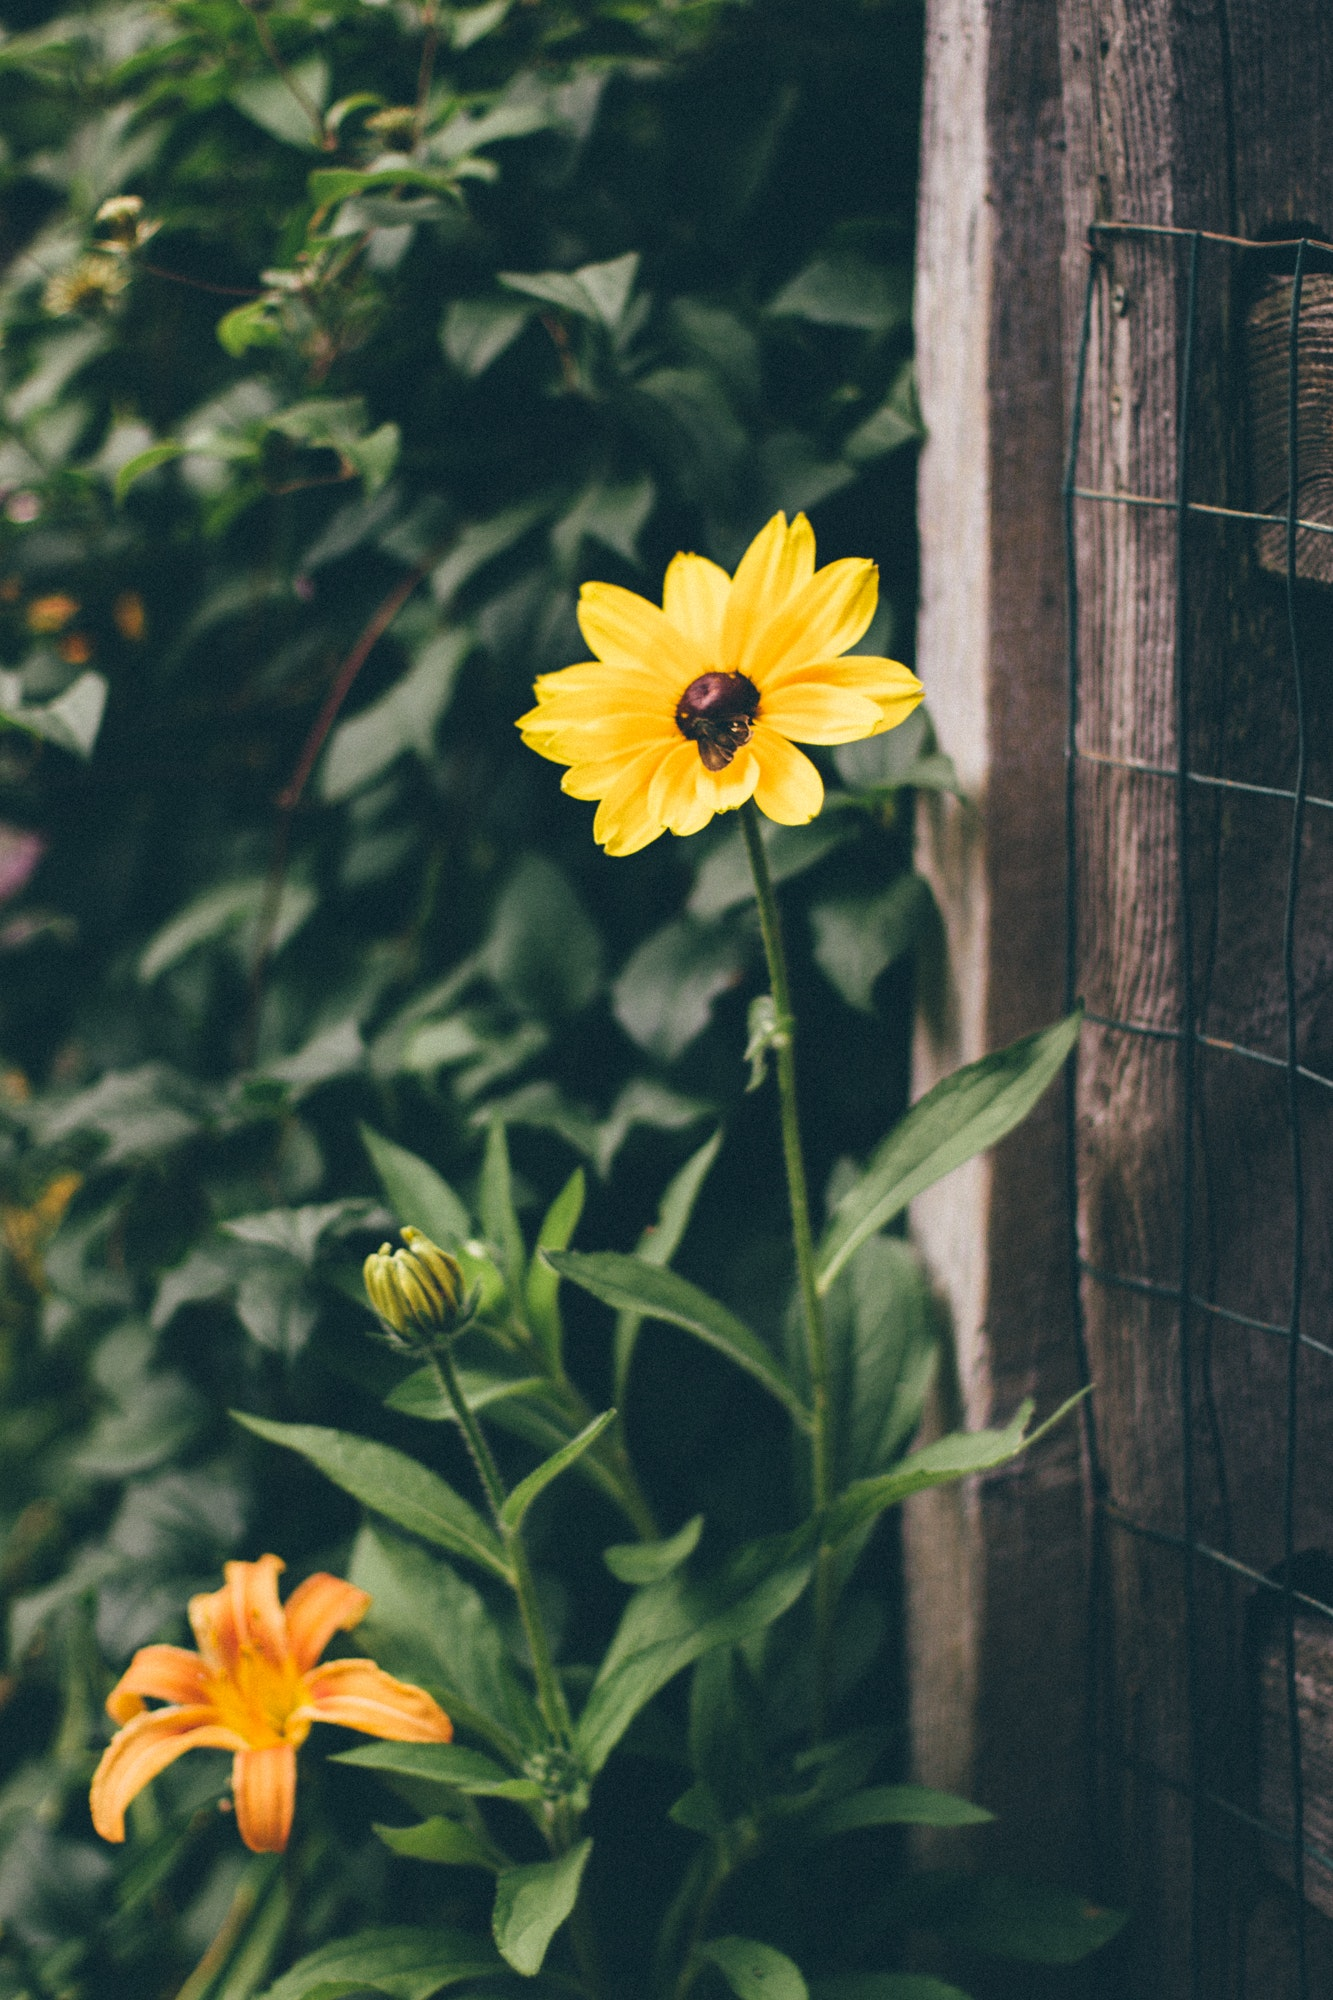 Yellow and black flower infront of brown wood frame fence photo